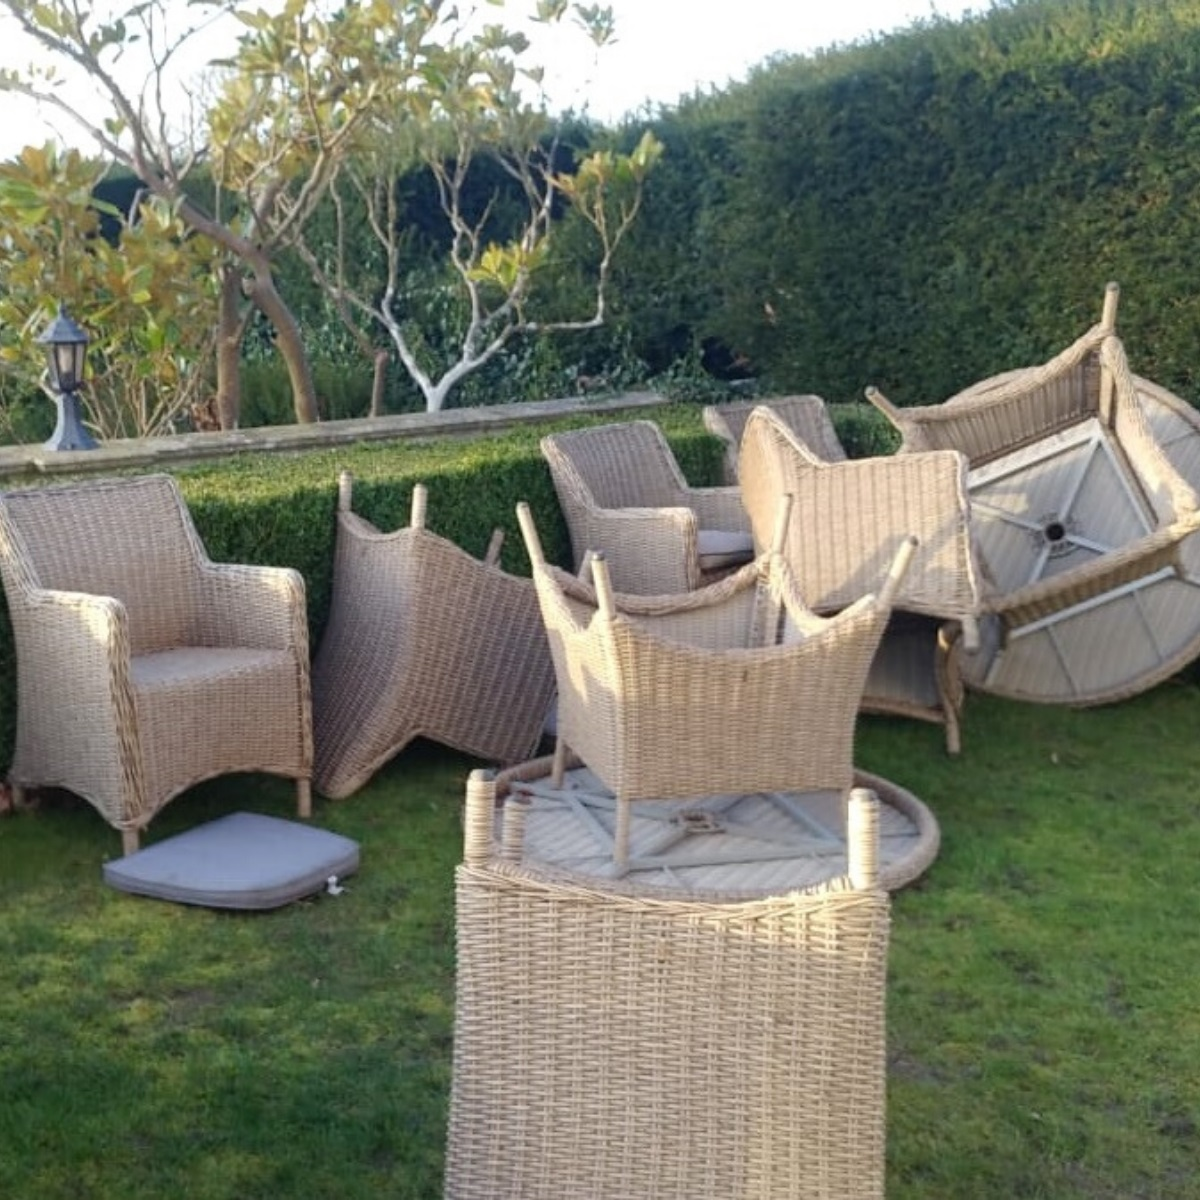 Cream outdoor rattan dining tables and chairs on a hotel lawn blown over by strong winds